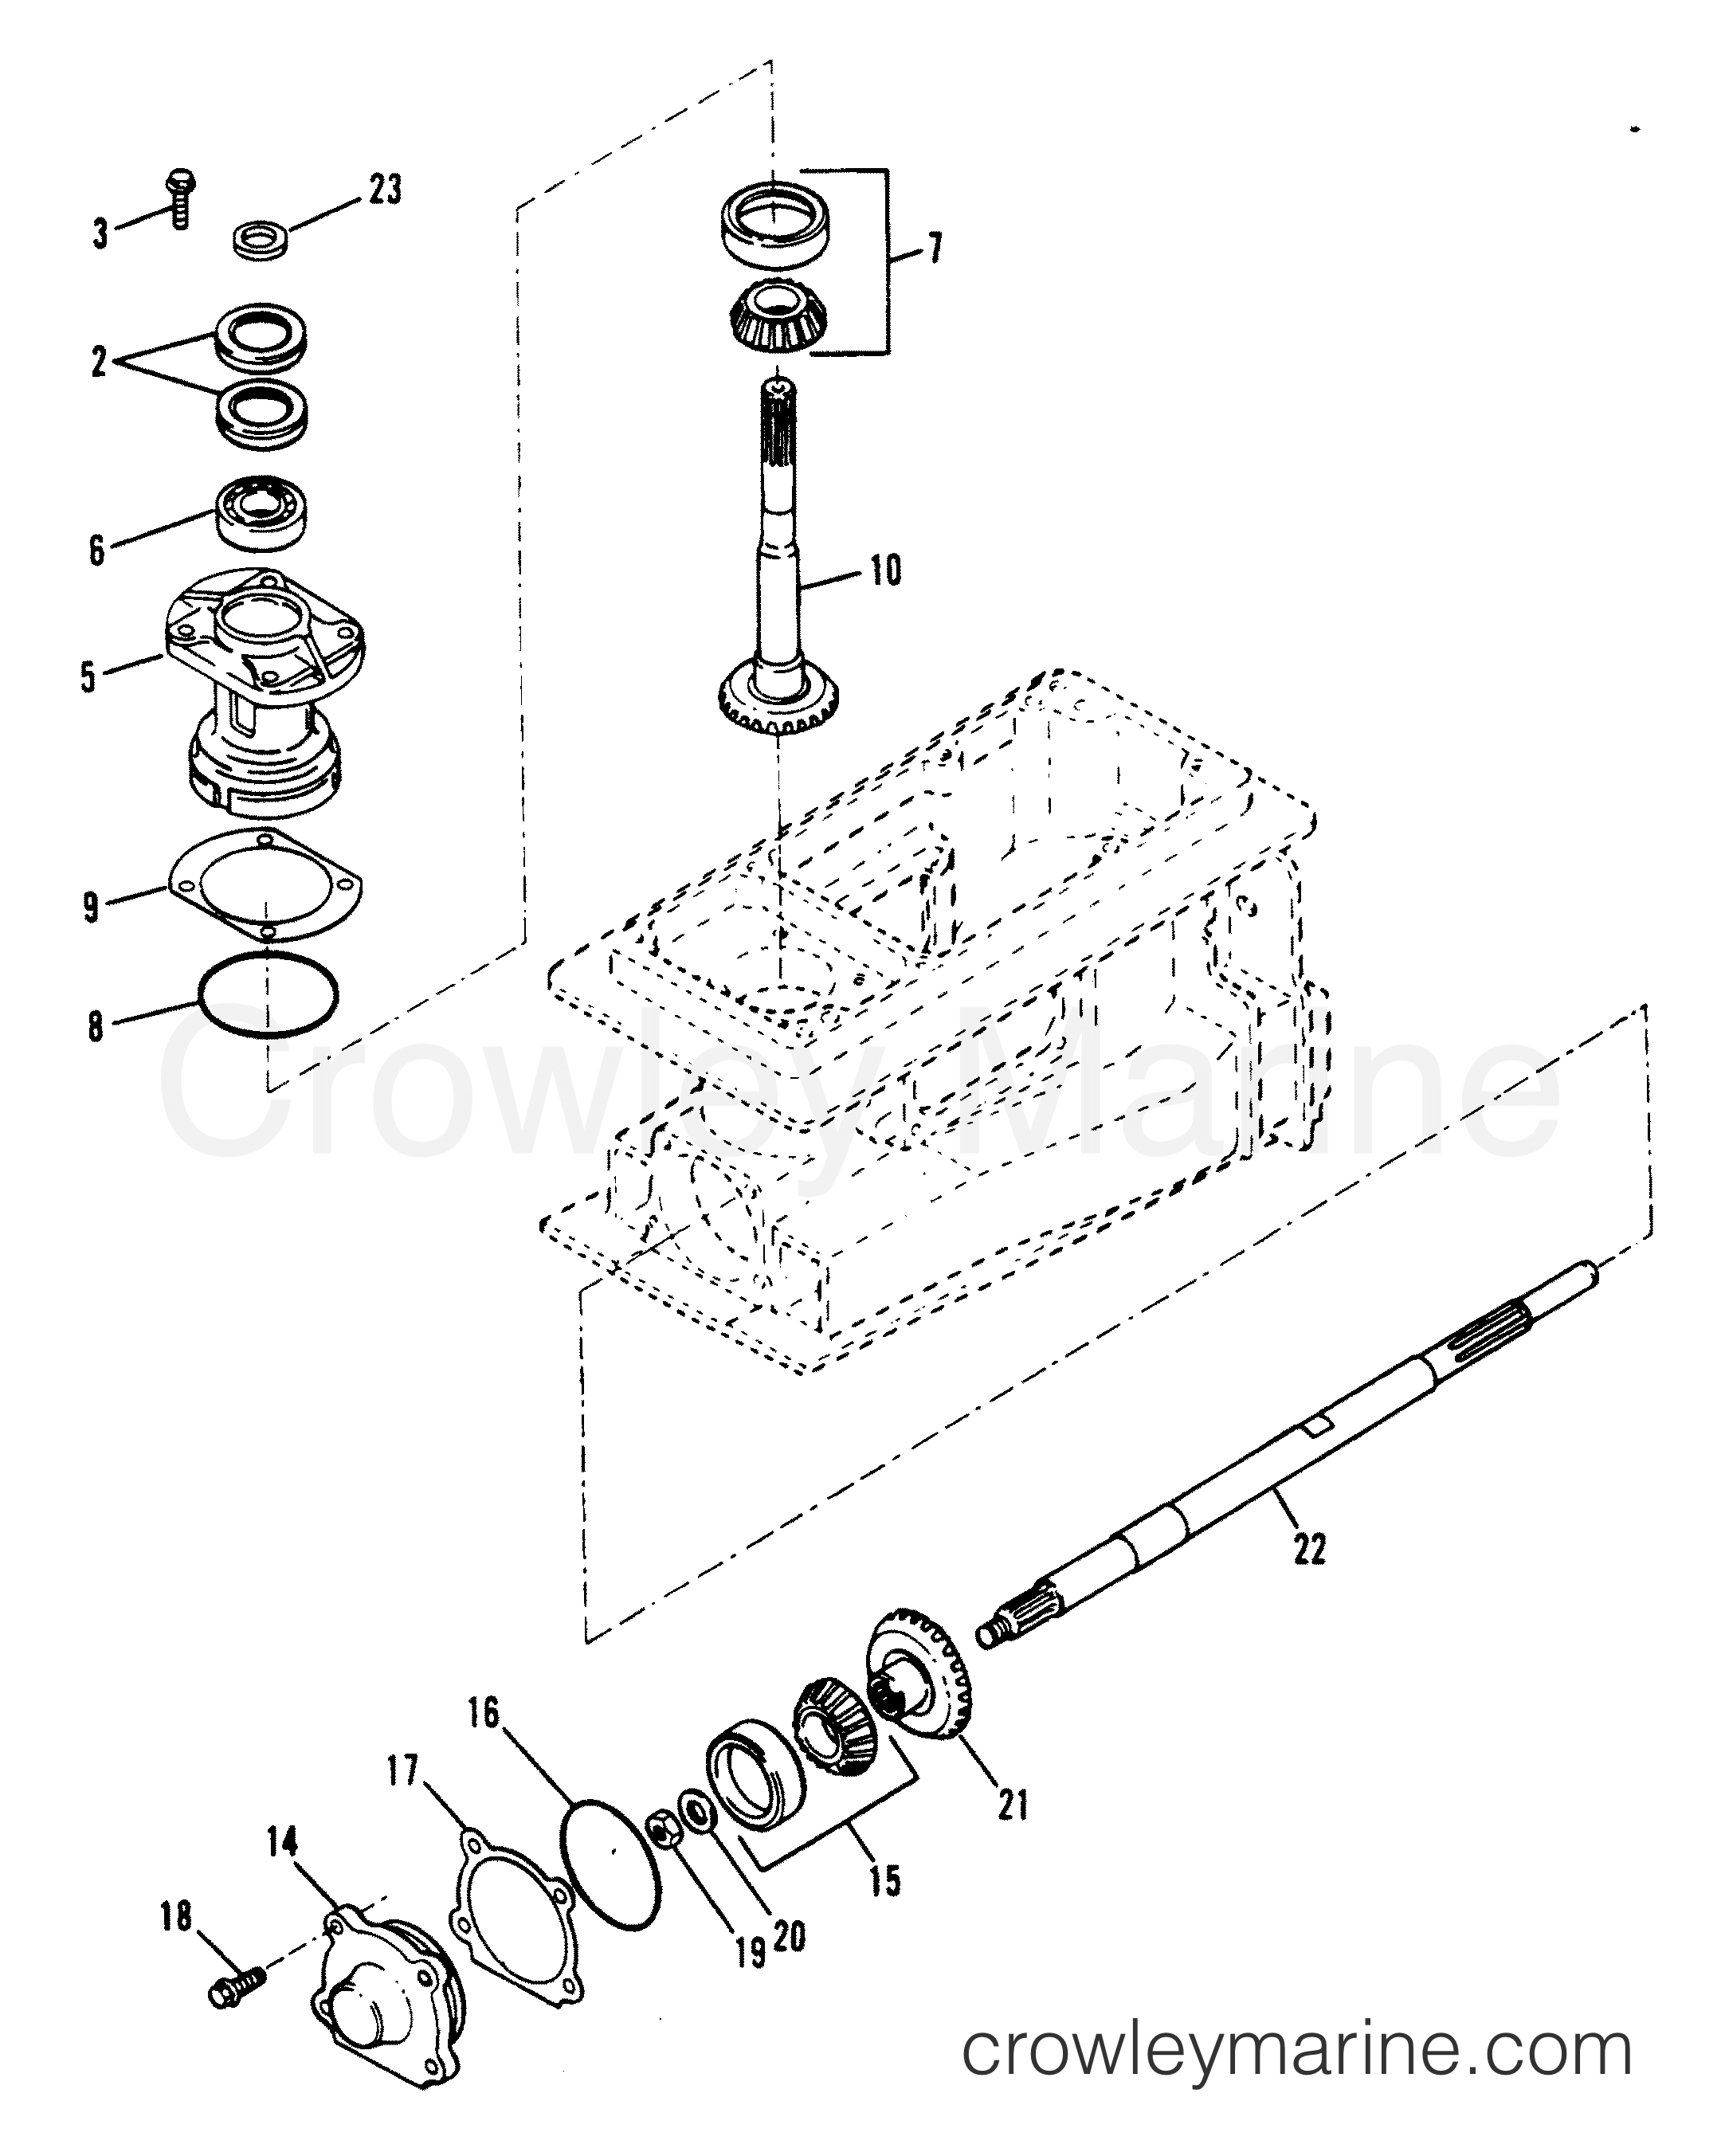 Pinion And Impeller Shaft Splined Drive